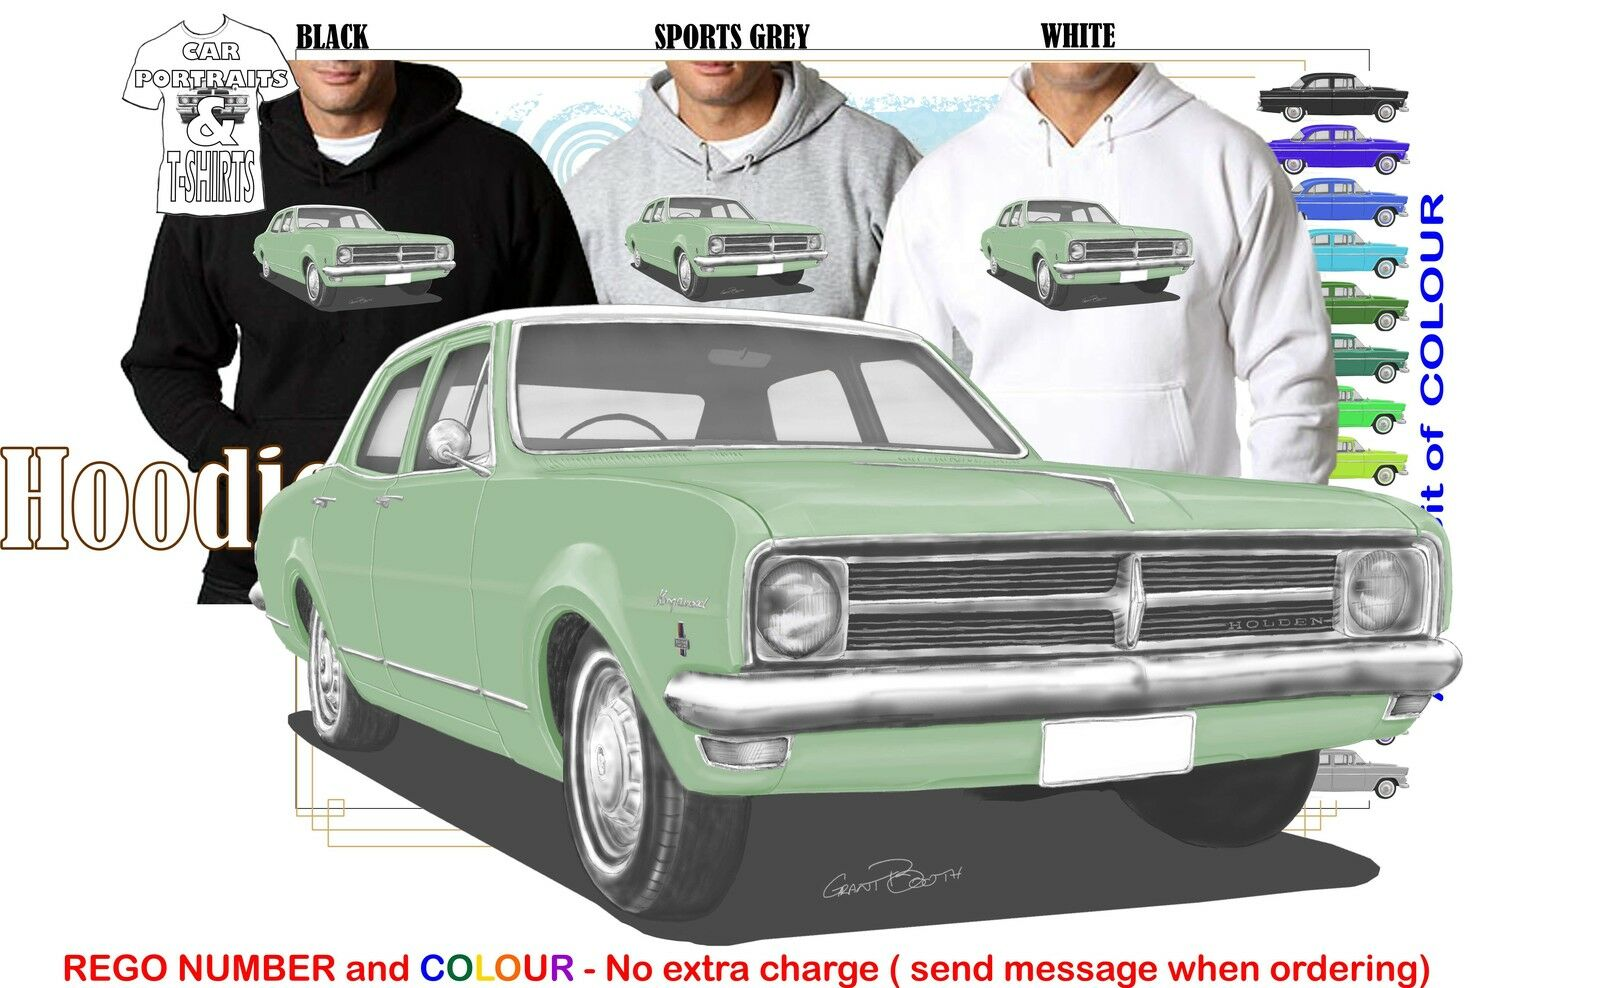 68-69 HK HOLDEN SEDAN HOODIE ILLUSTRATED CLASSIC RETRO MUSCLE SPORTS CAR